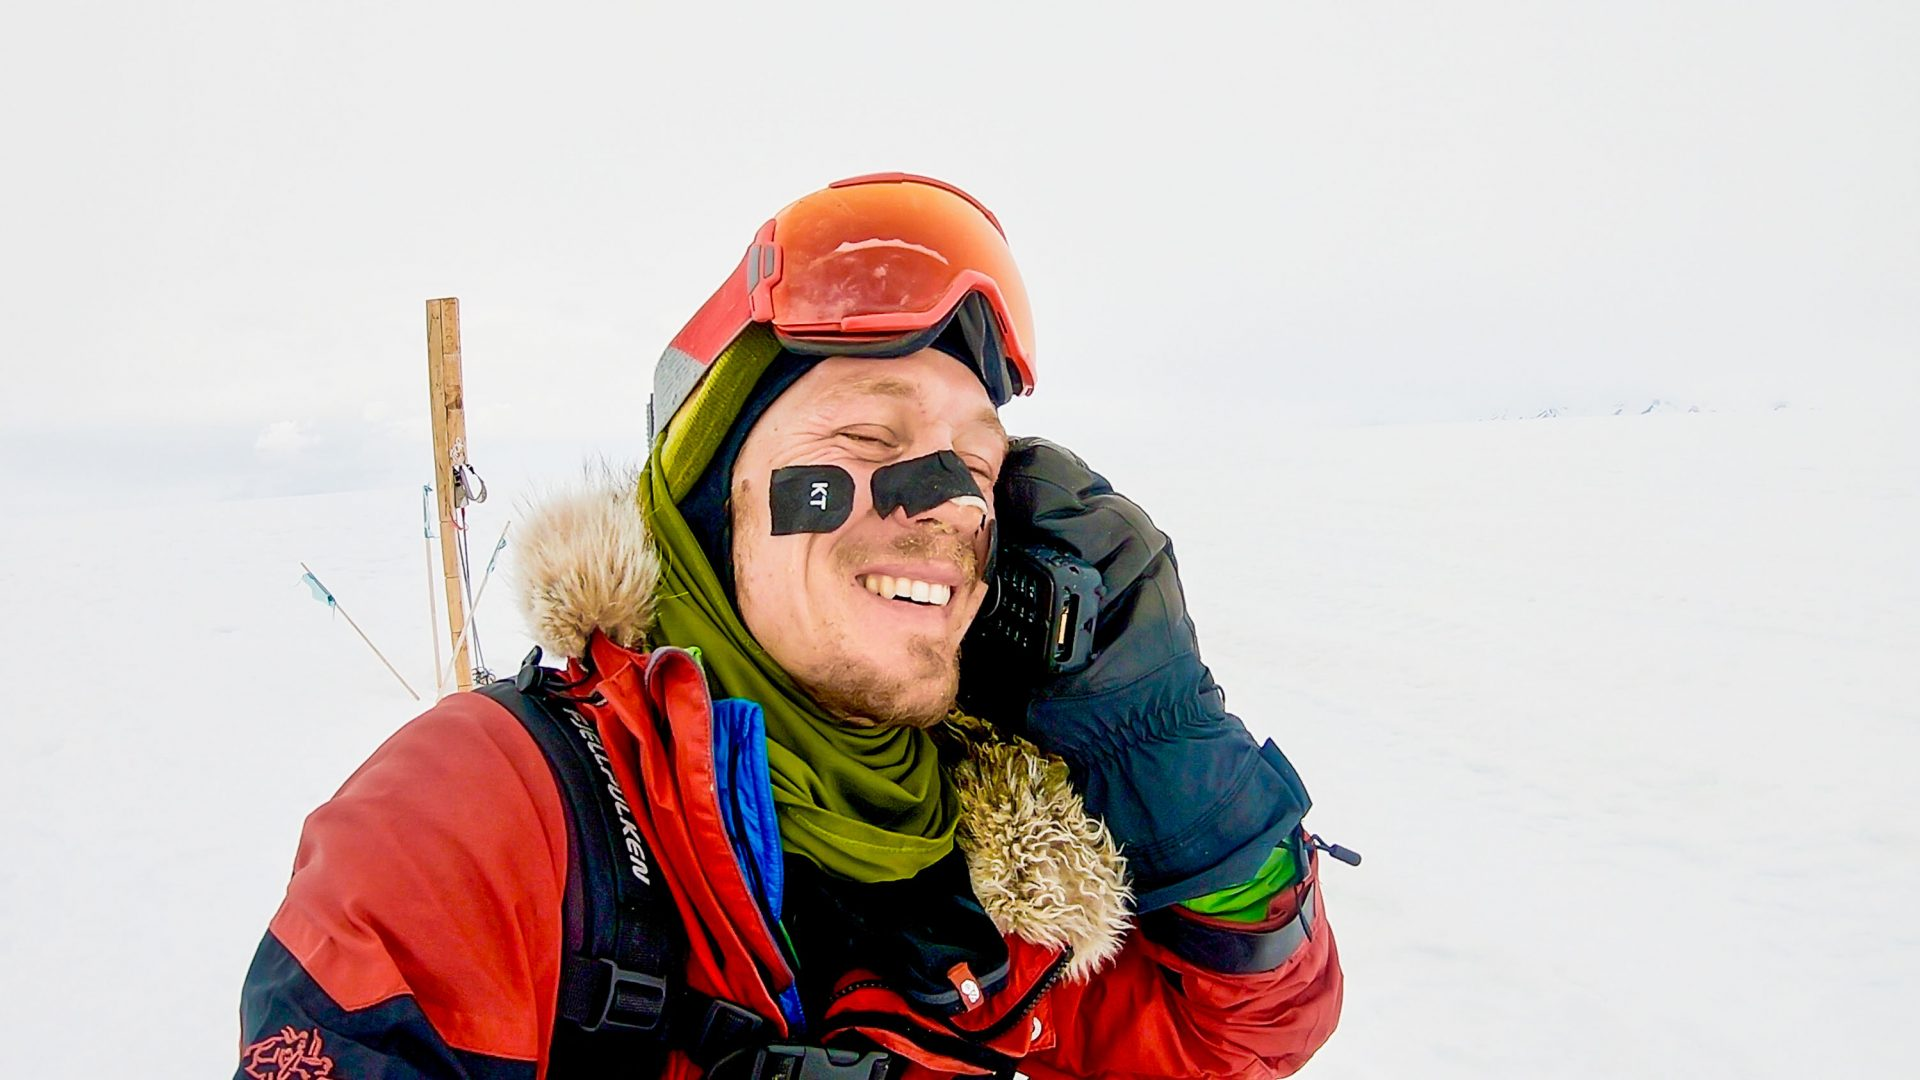 A relieved looking Colin on the phone upon completing his epic unsupported journey through Antarctica.